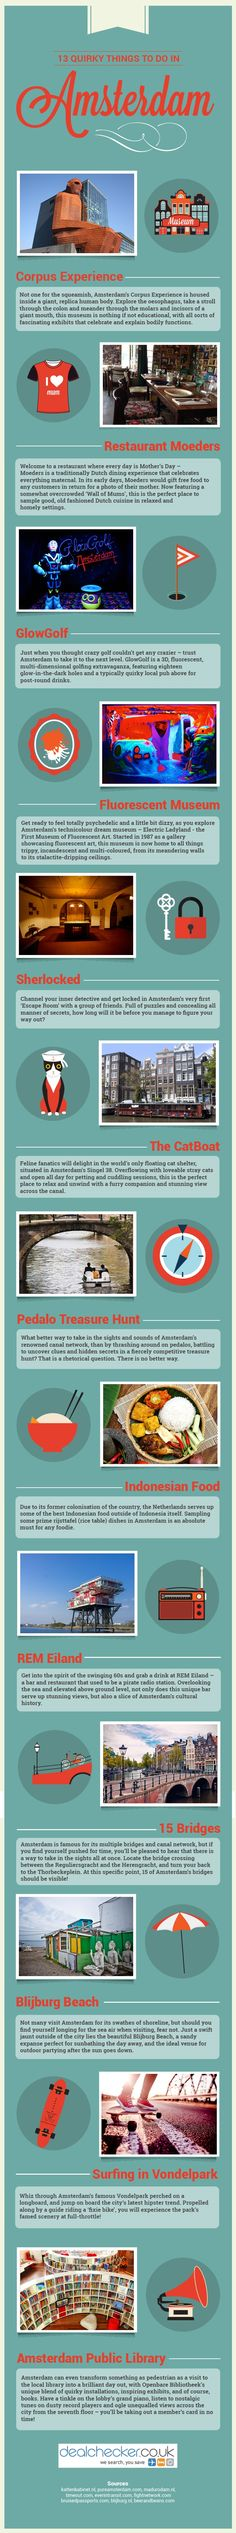 13 Quirky Things to do in Amsterdam #infographic #Travel #Amsterdam